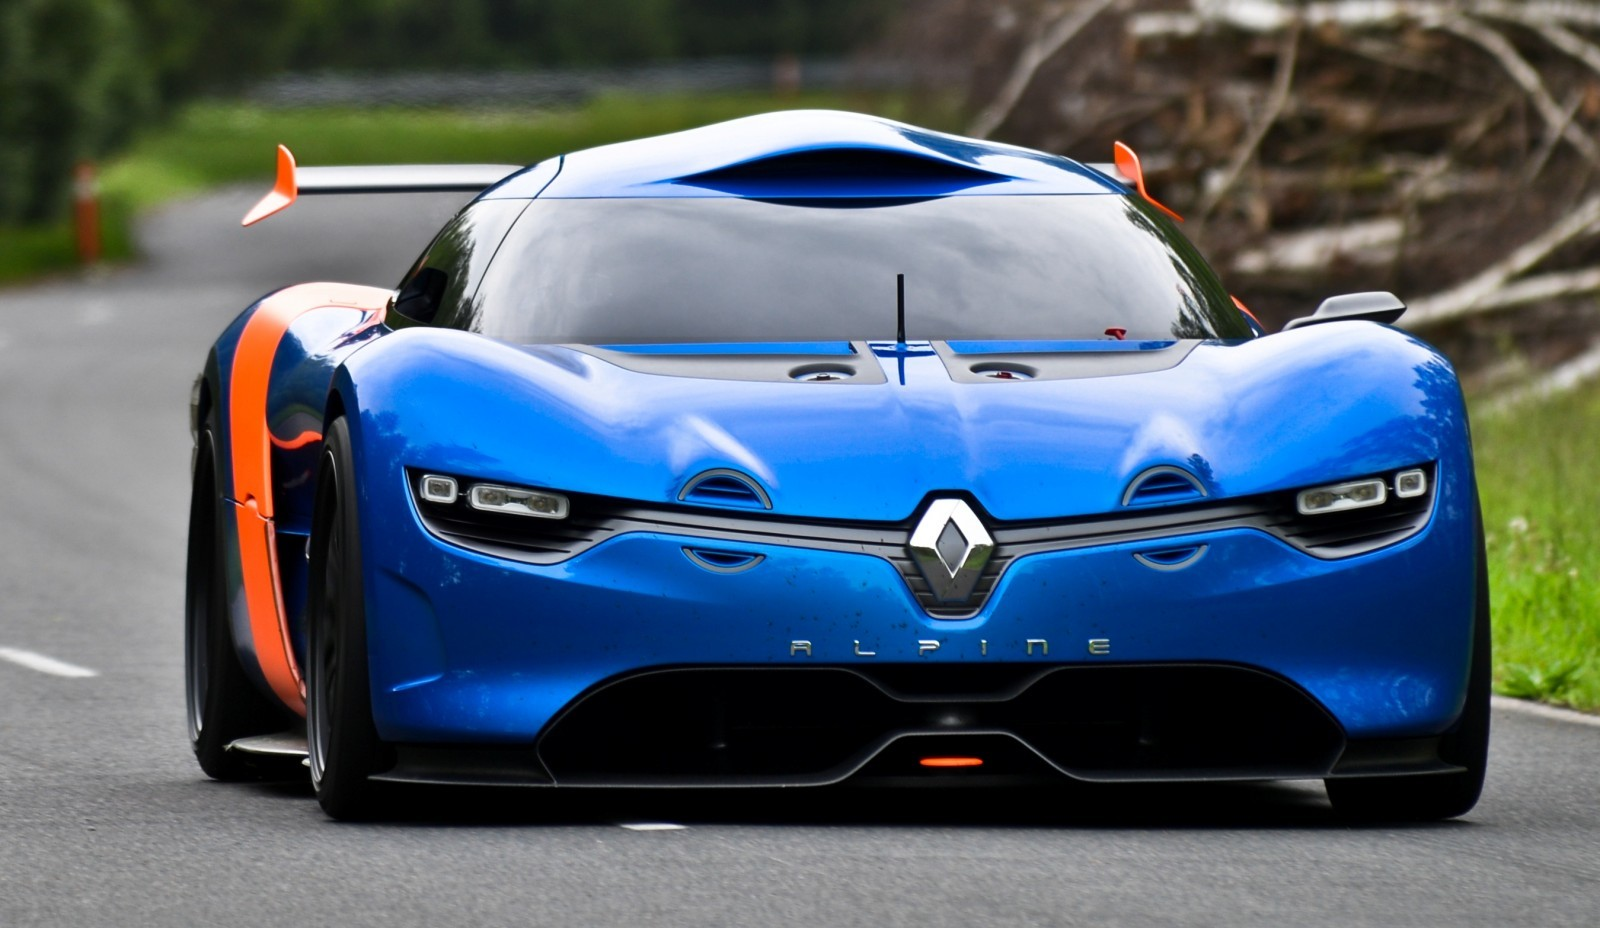 Concept Flashback - 2012 Renault Alpine A110-50 A Blend of M64 and A110 Berlinette 57